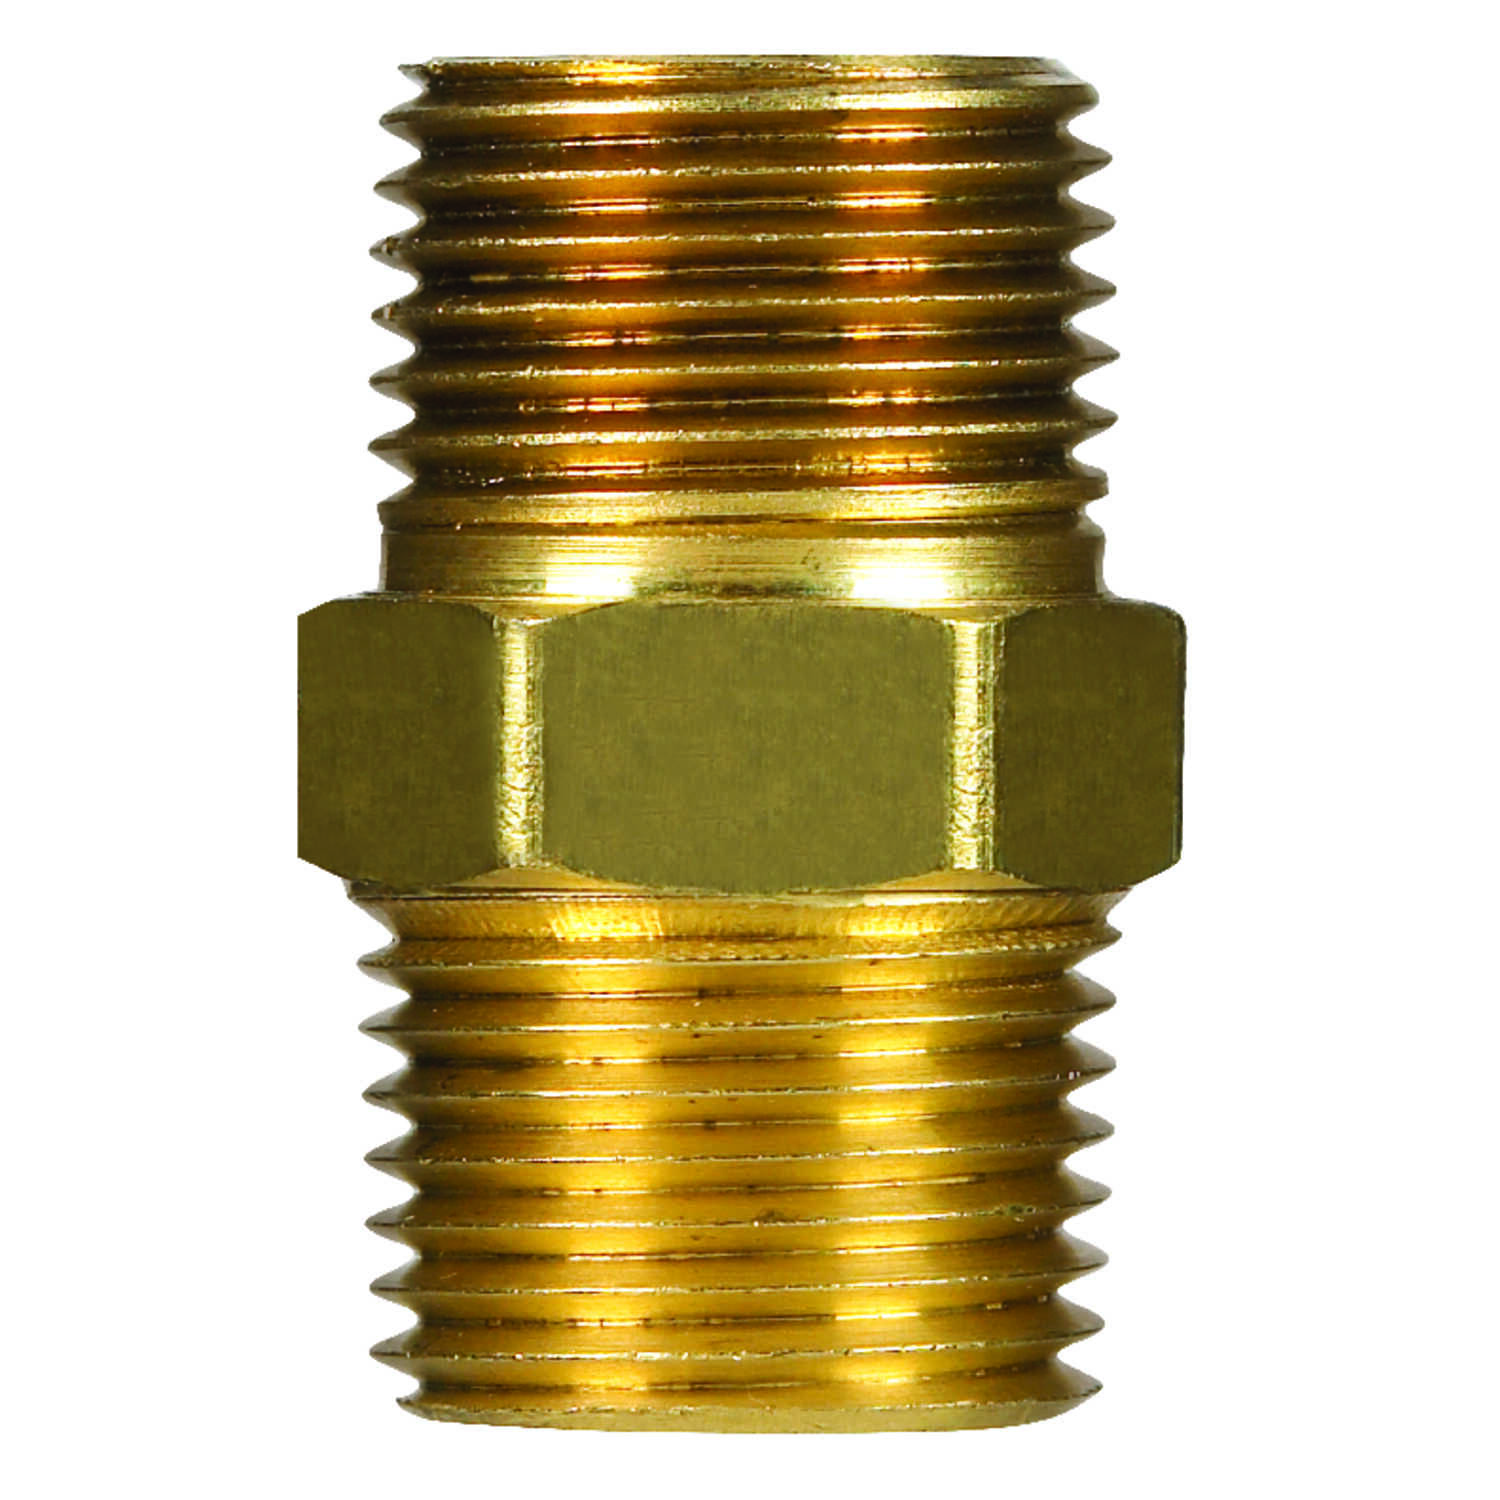 JMF  3/8 in. Dia. x 3/8 in. Dia. MPT To MPT  Yellow Brass  Hex Pipe Nipple